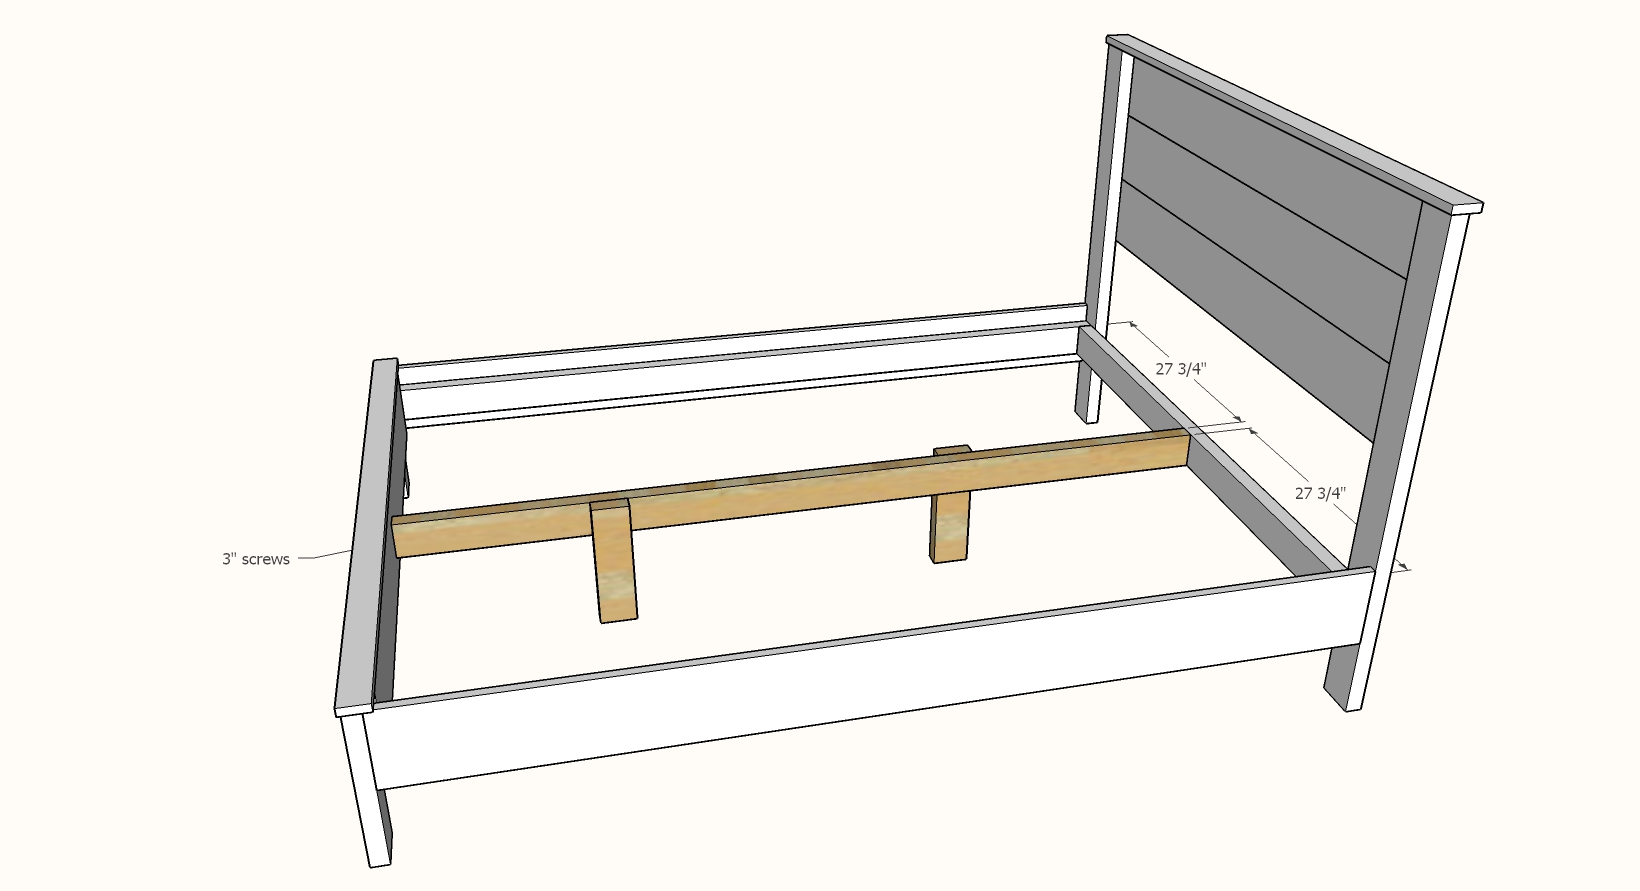 bed frame center support attached to headboard and footboard